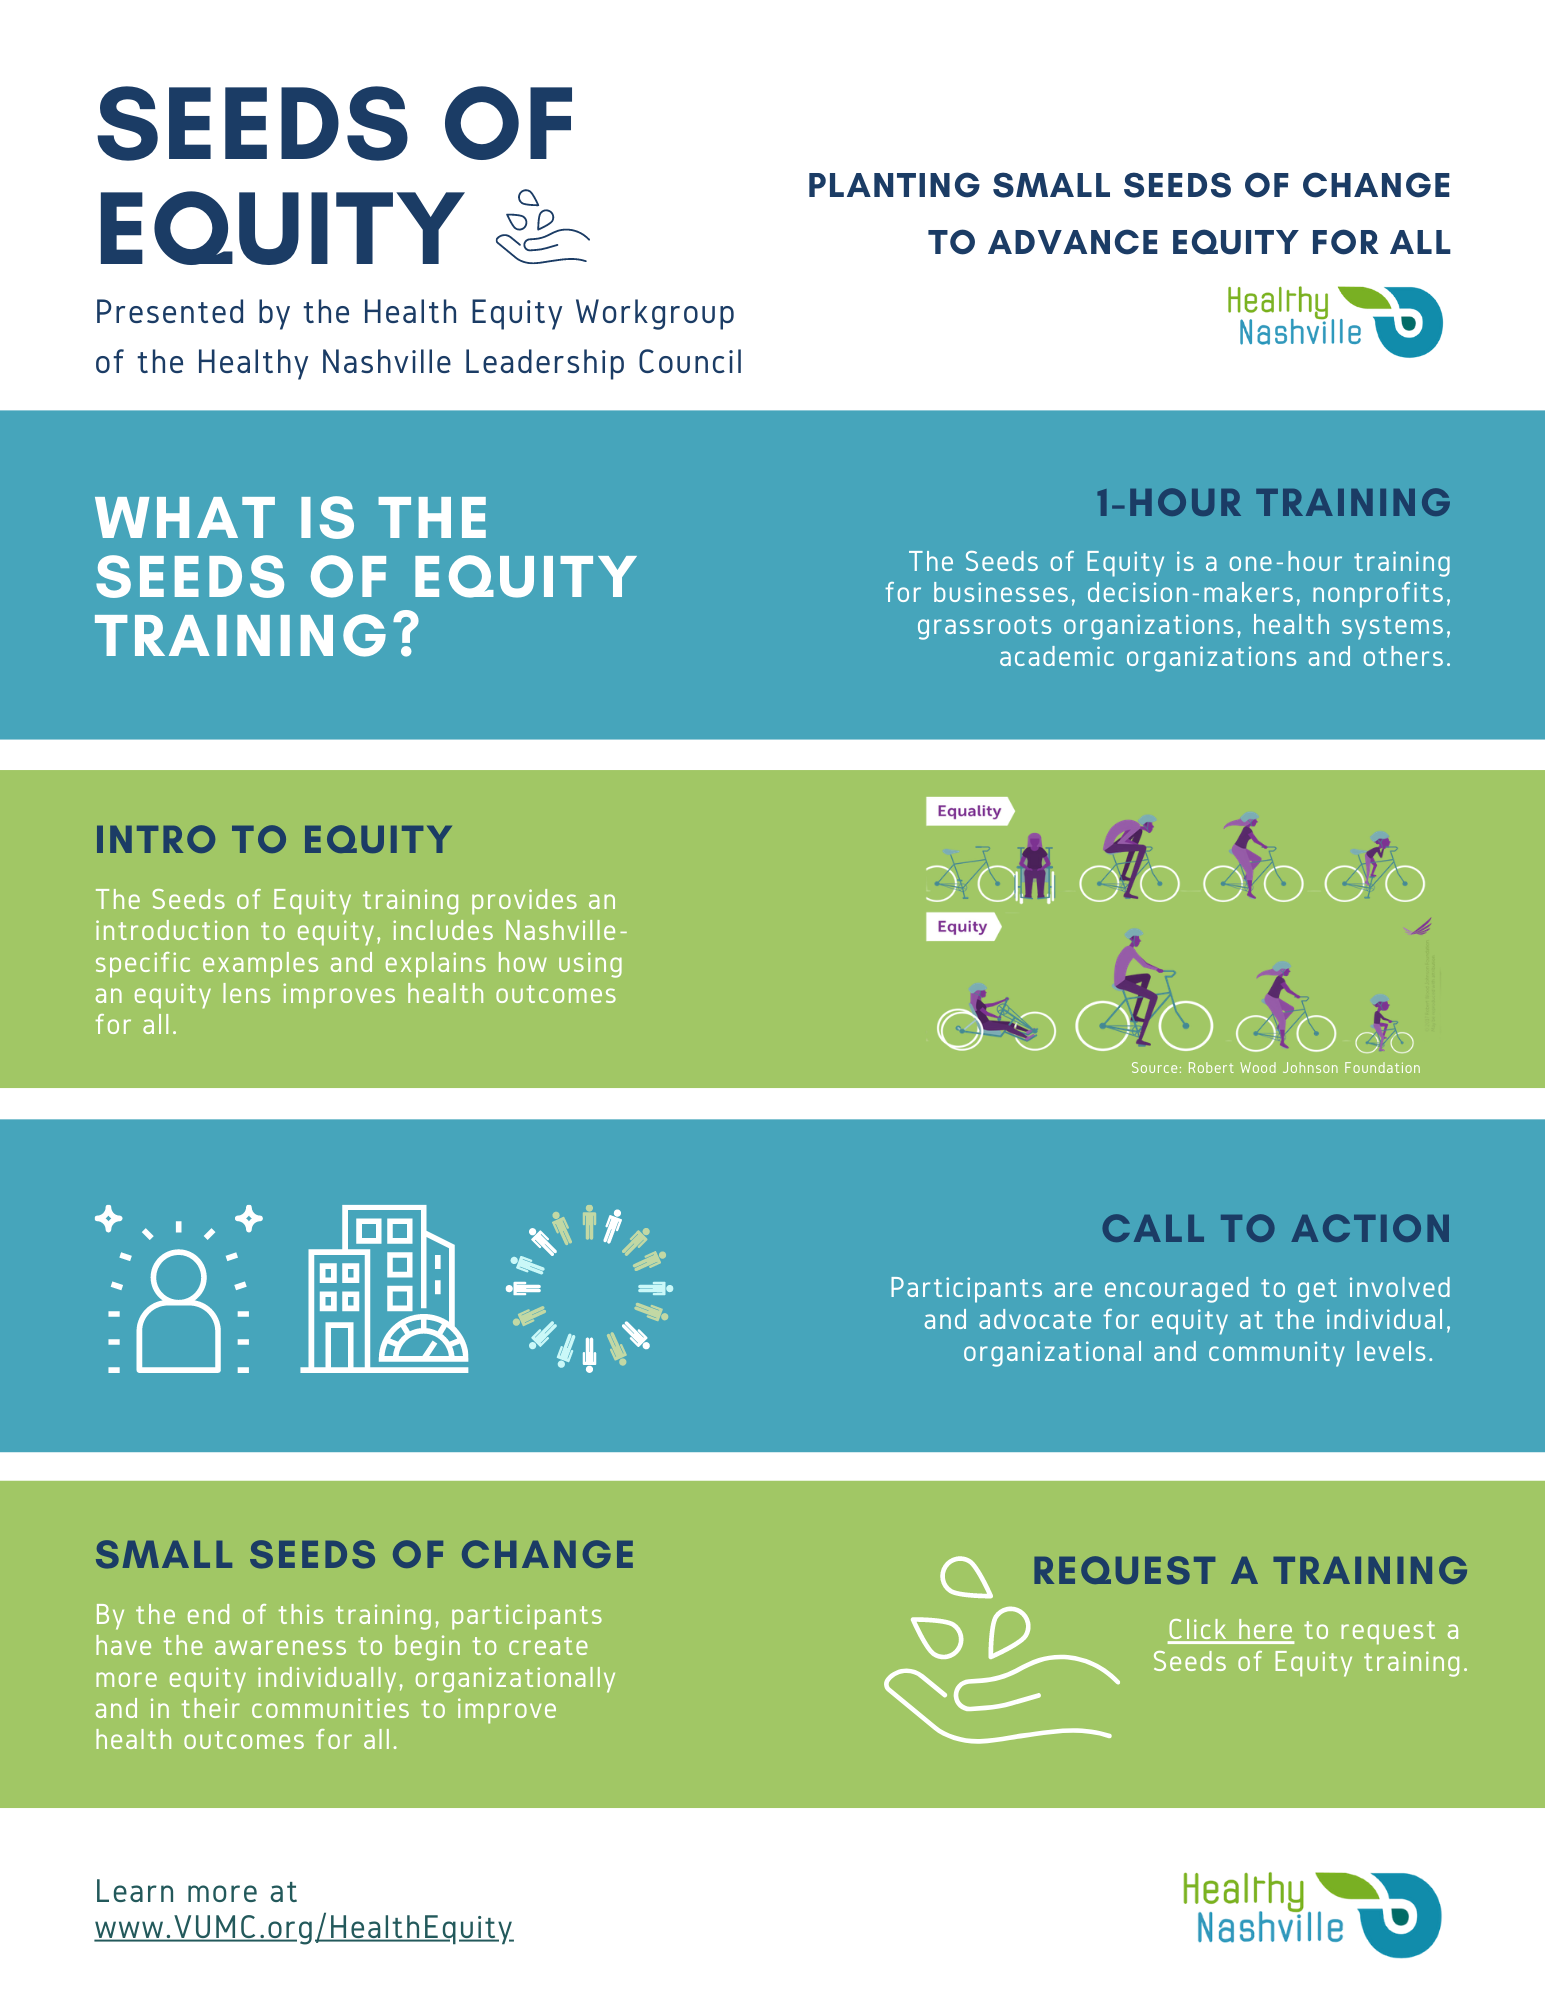 Seeds of Equity